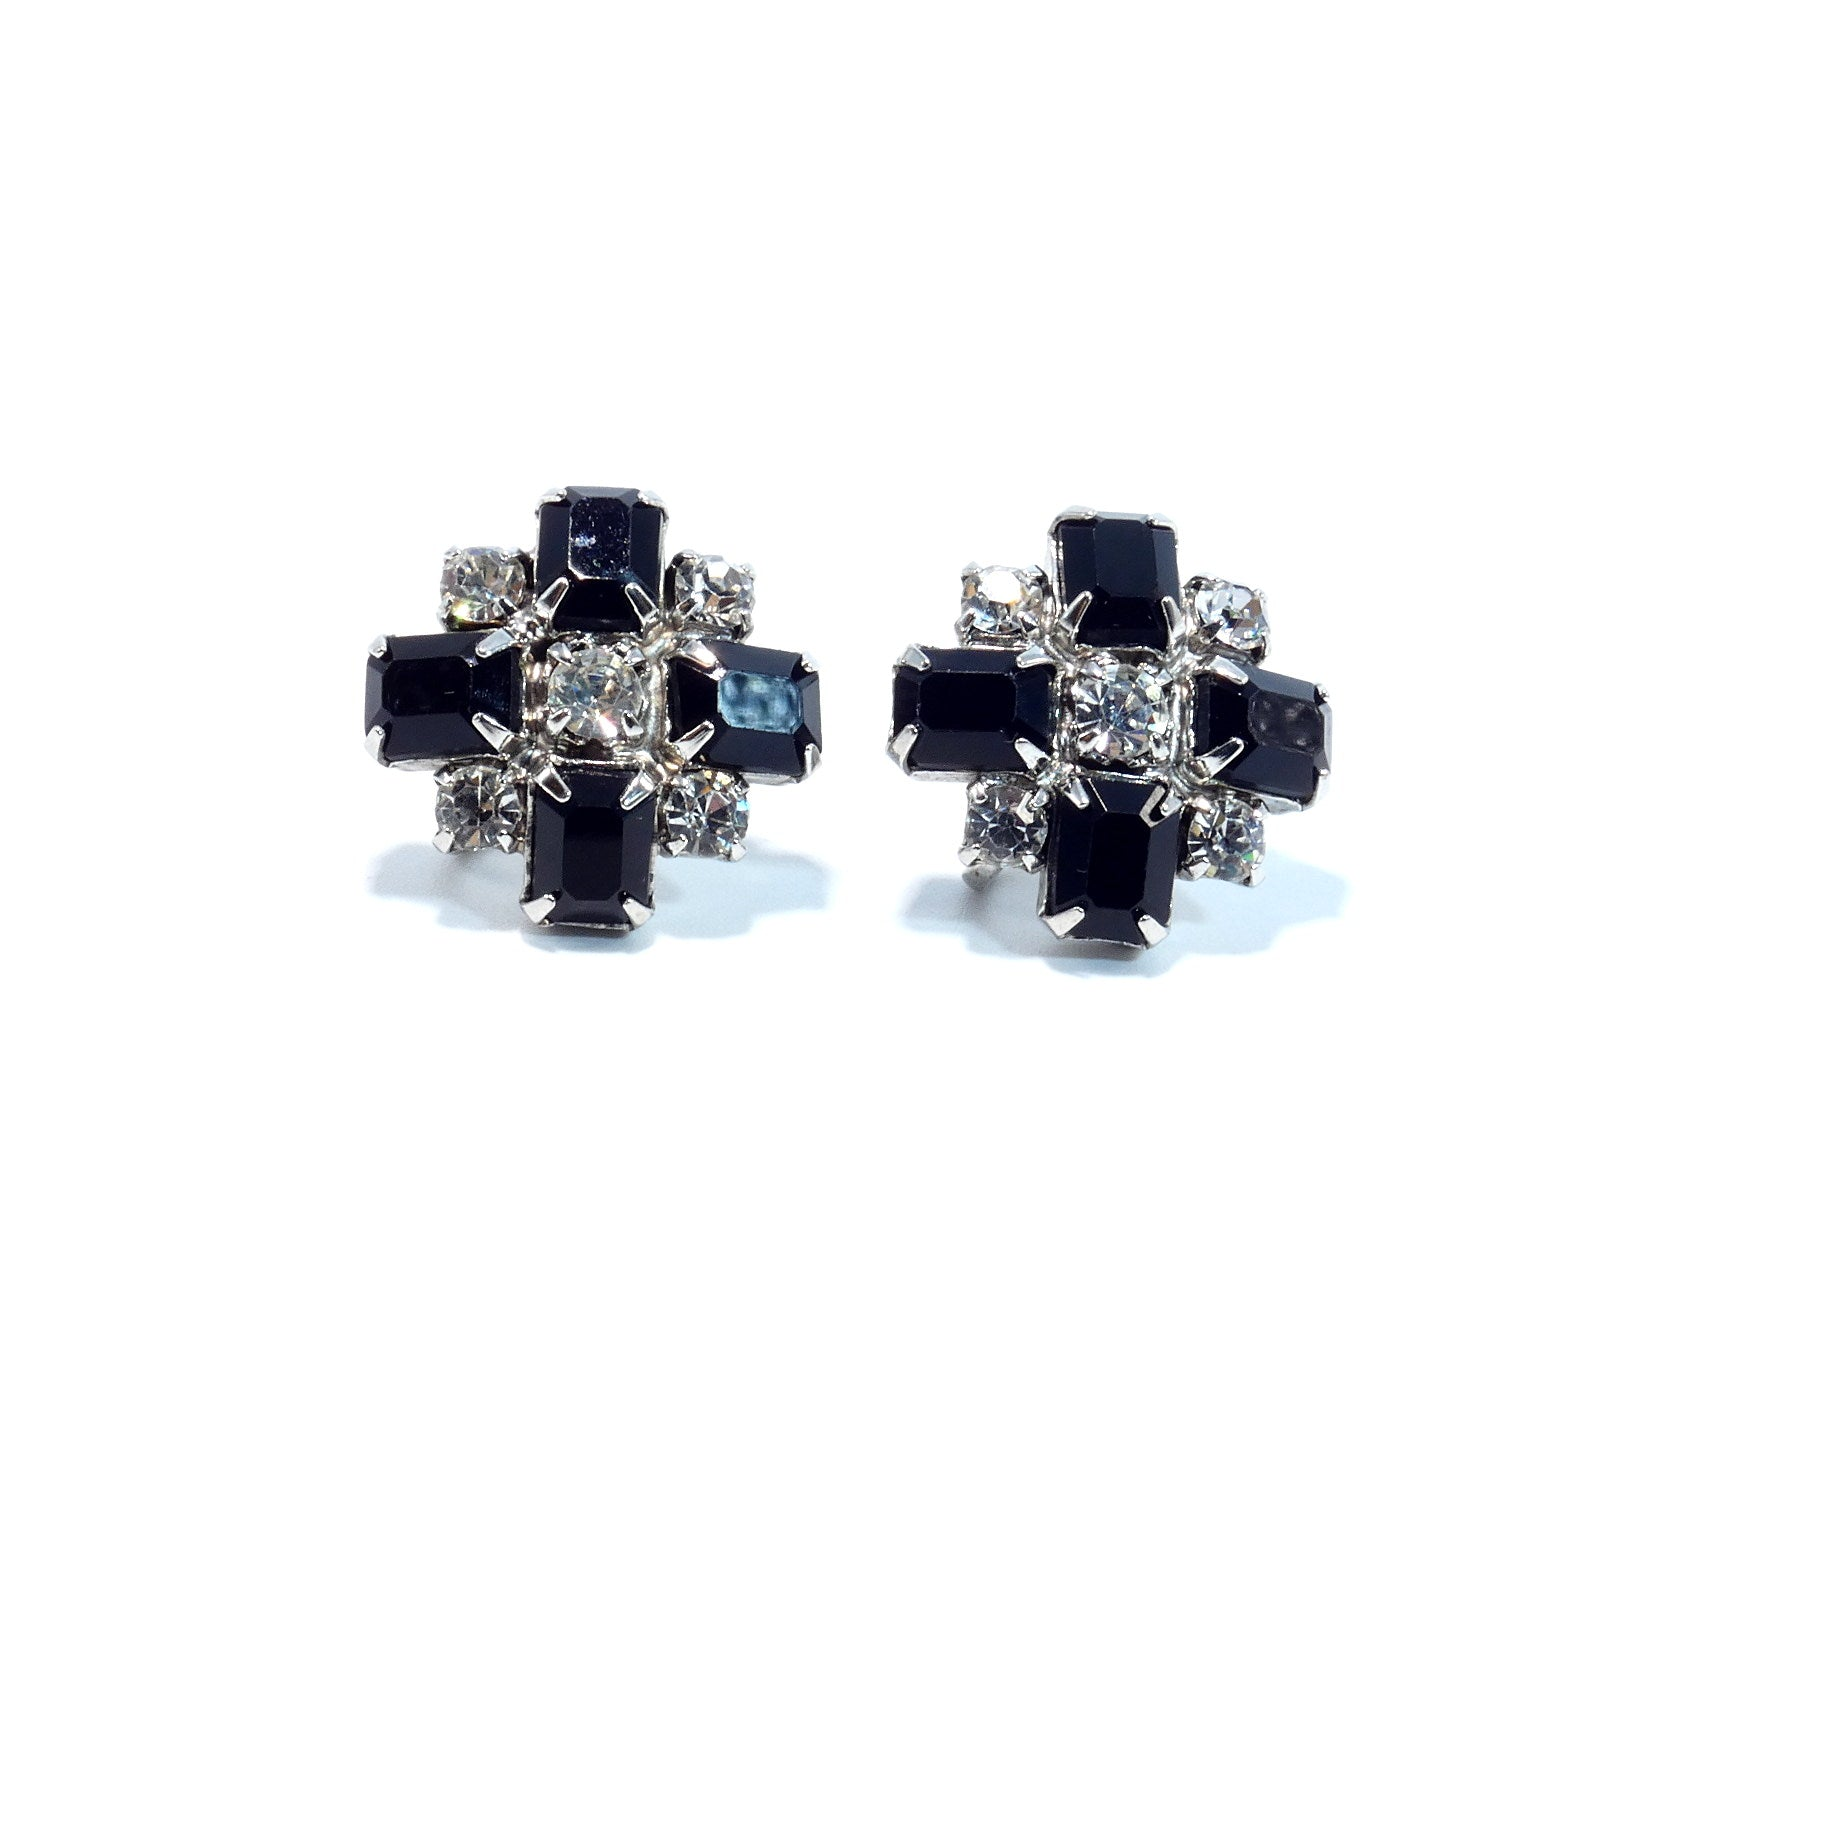 1950s Black Rhinestone Cross Design Screw Back Earrings